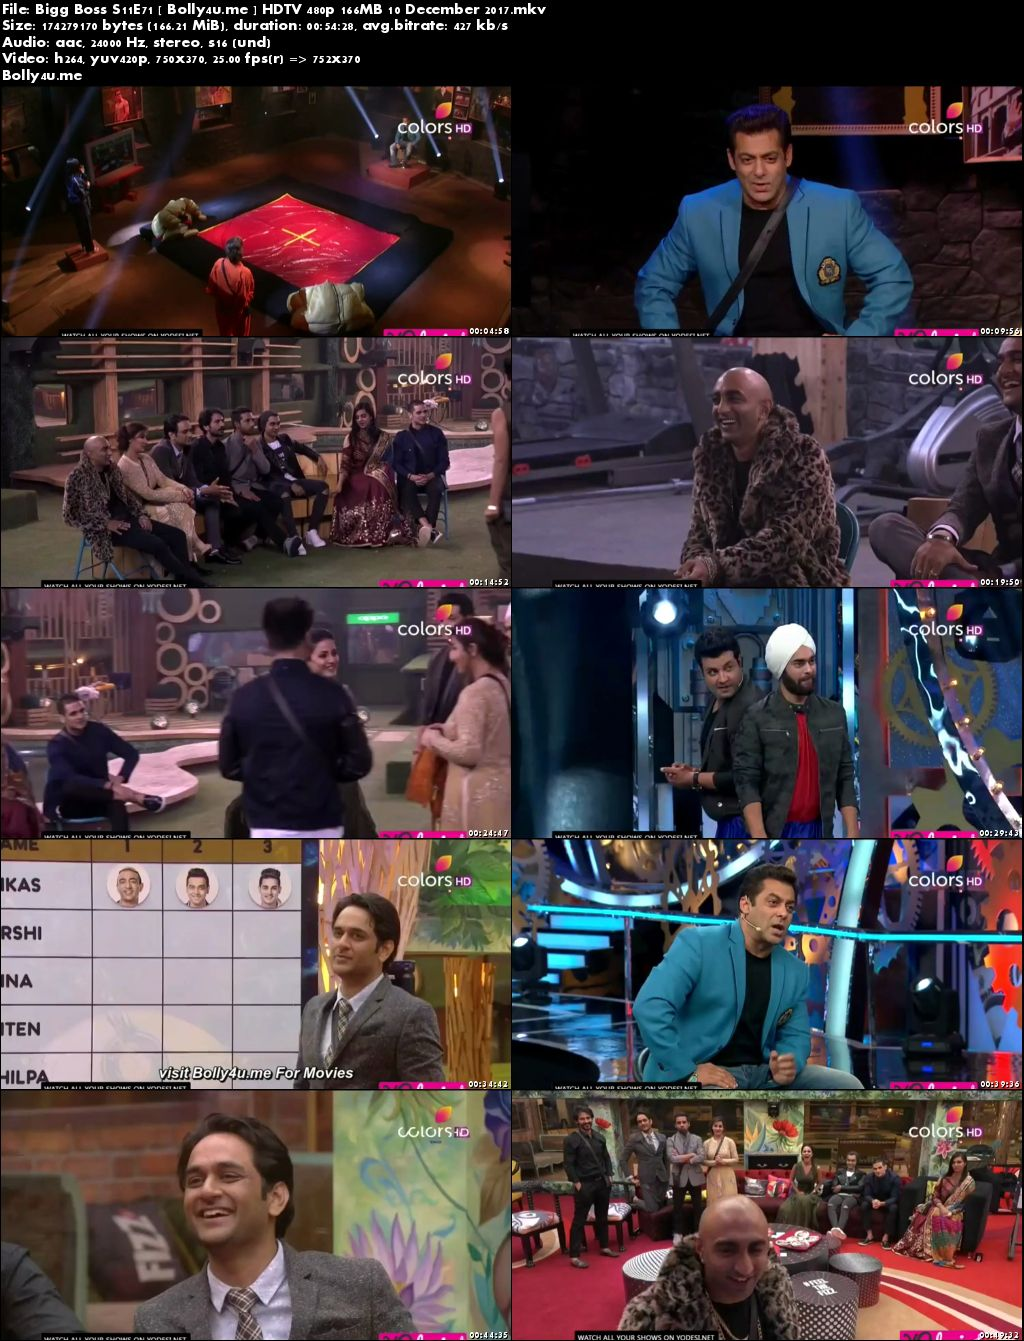 Bigg Boss S11E71 HDTV 480p 160MB 10 Dec 2017 Download